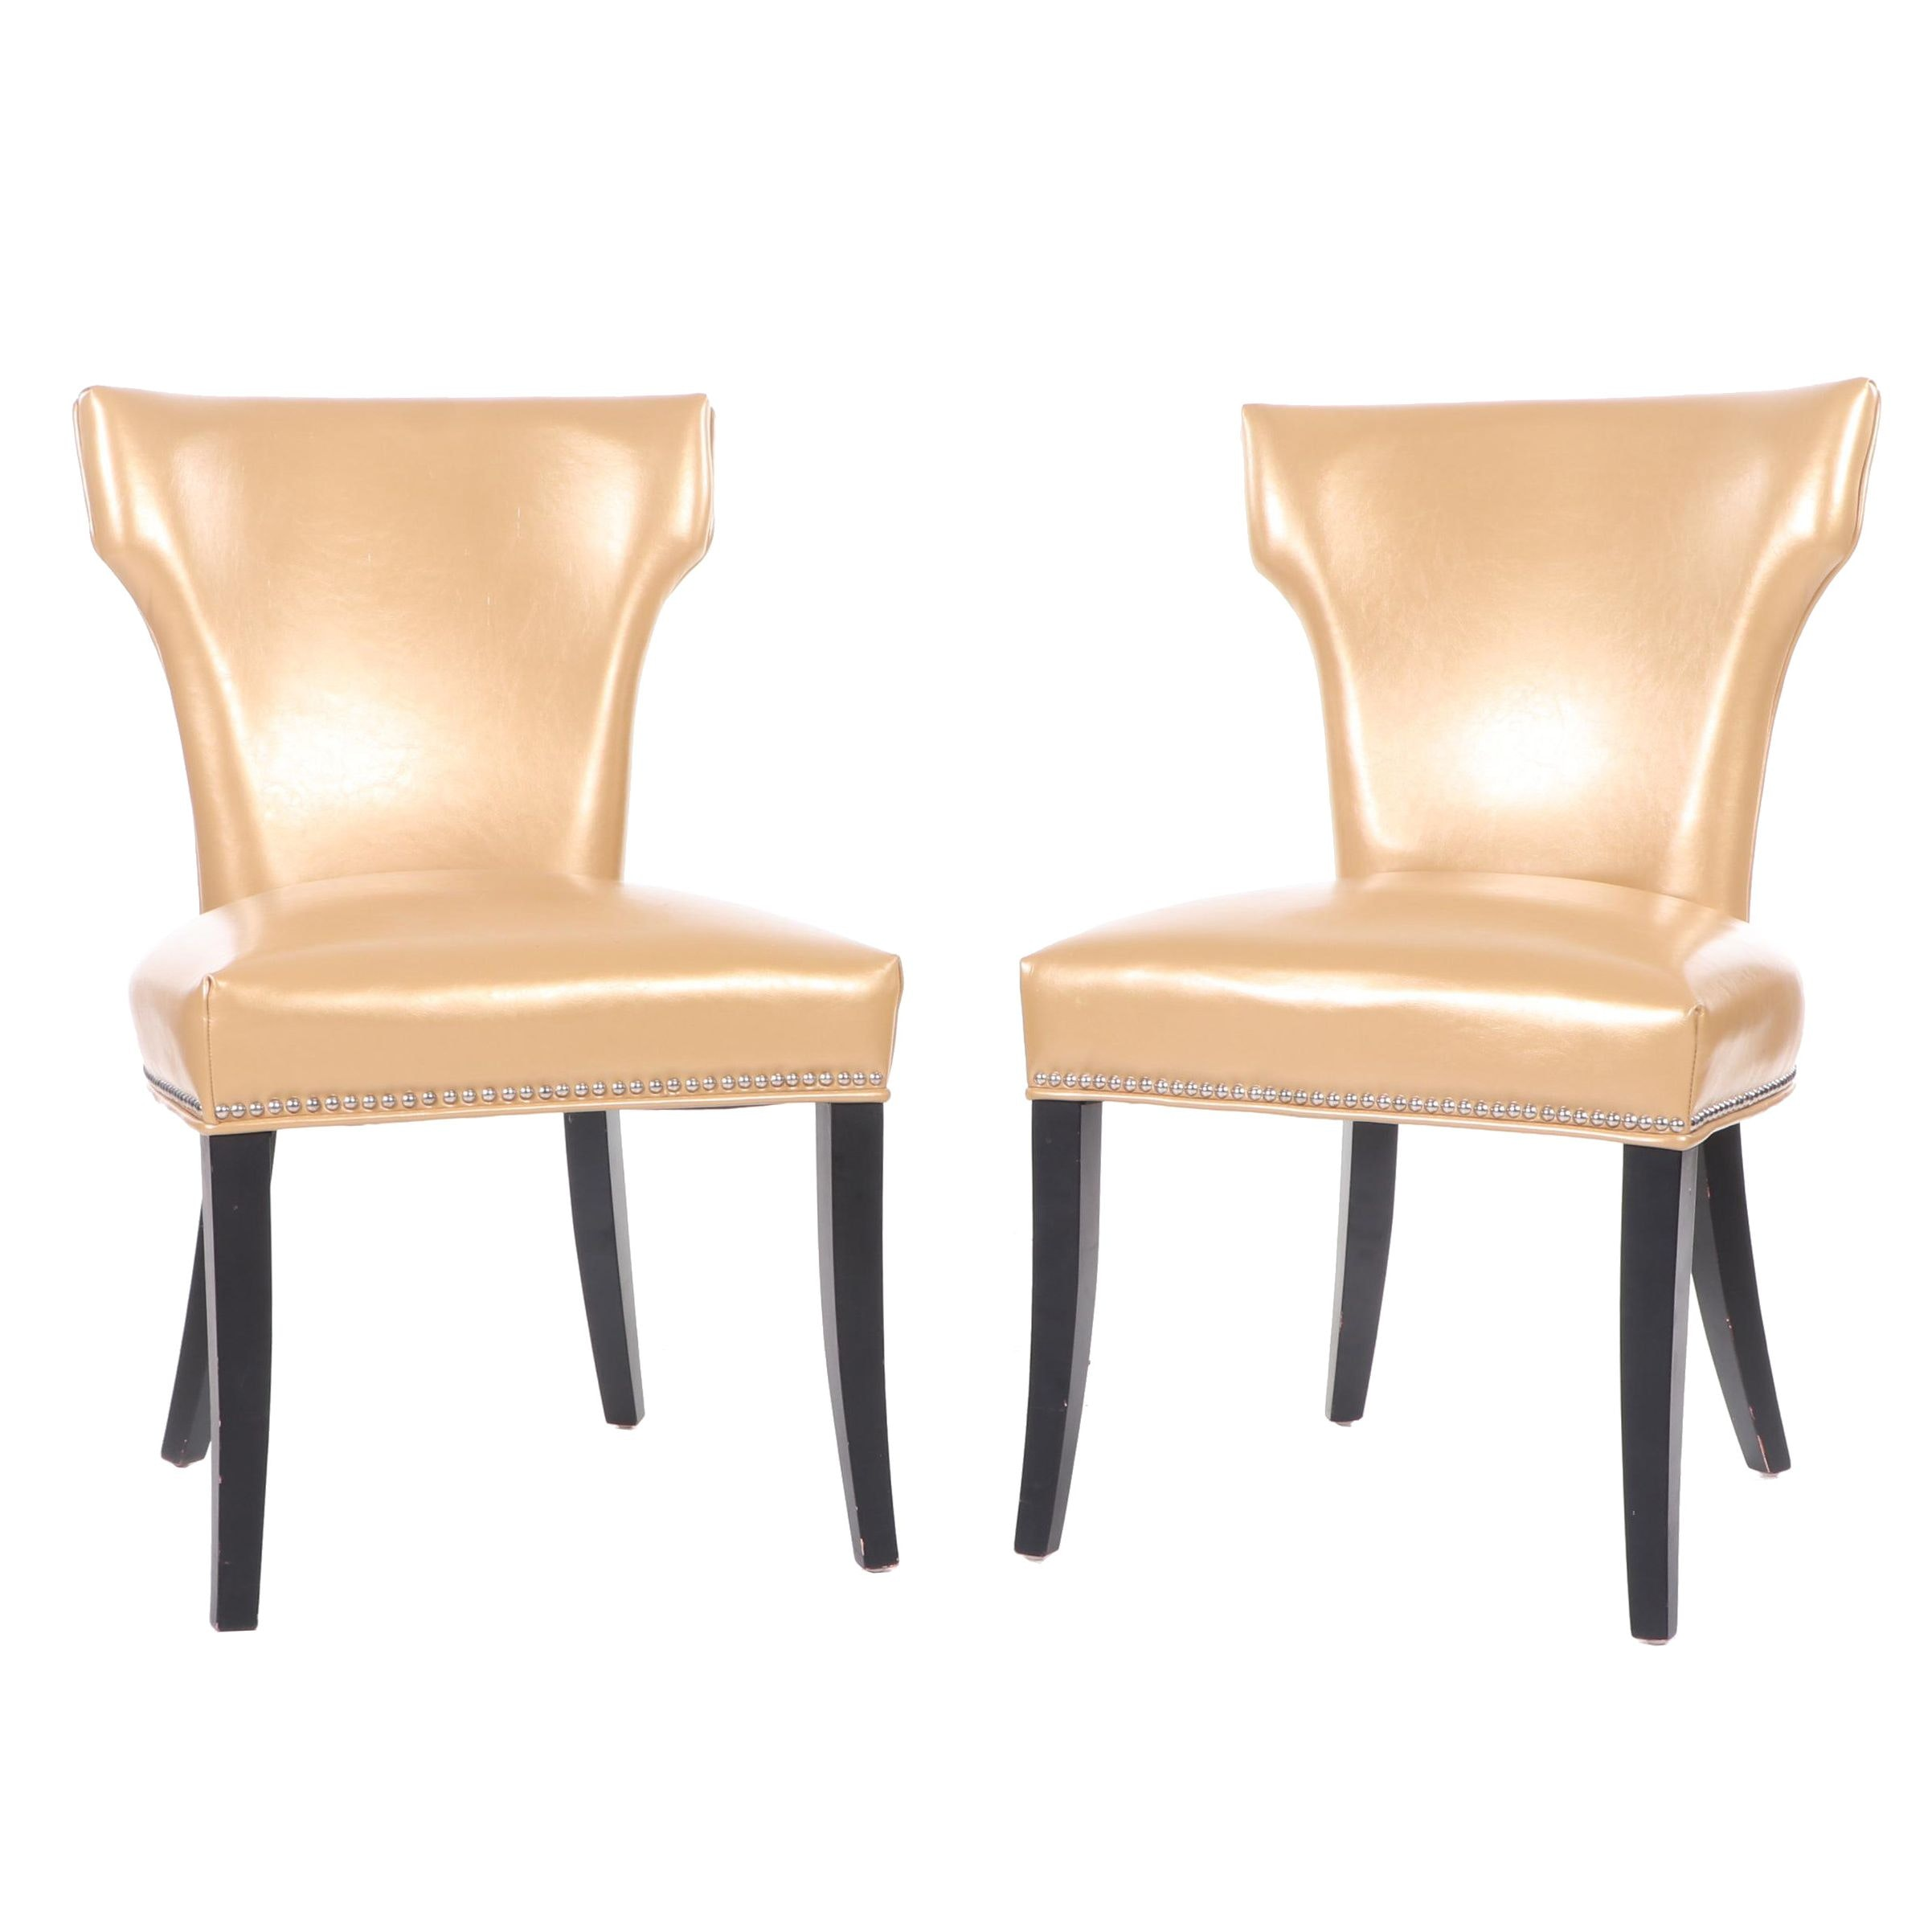 Pair of Contemporary Upholstered Side Chairs with Nailhead Trim